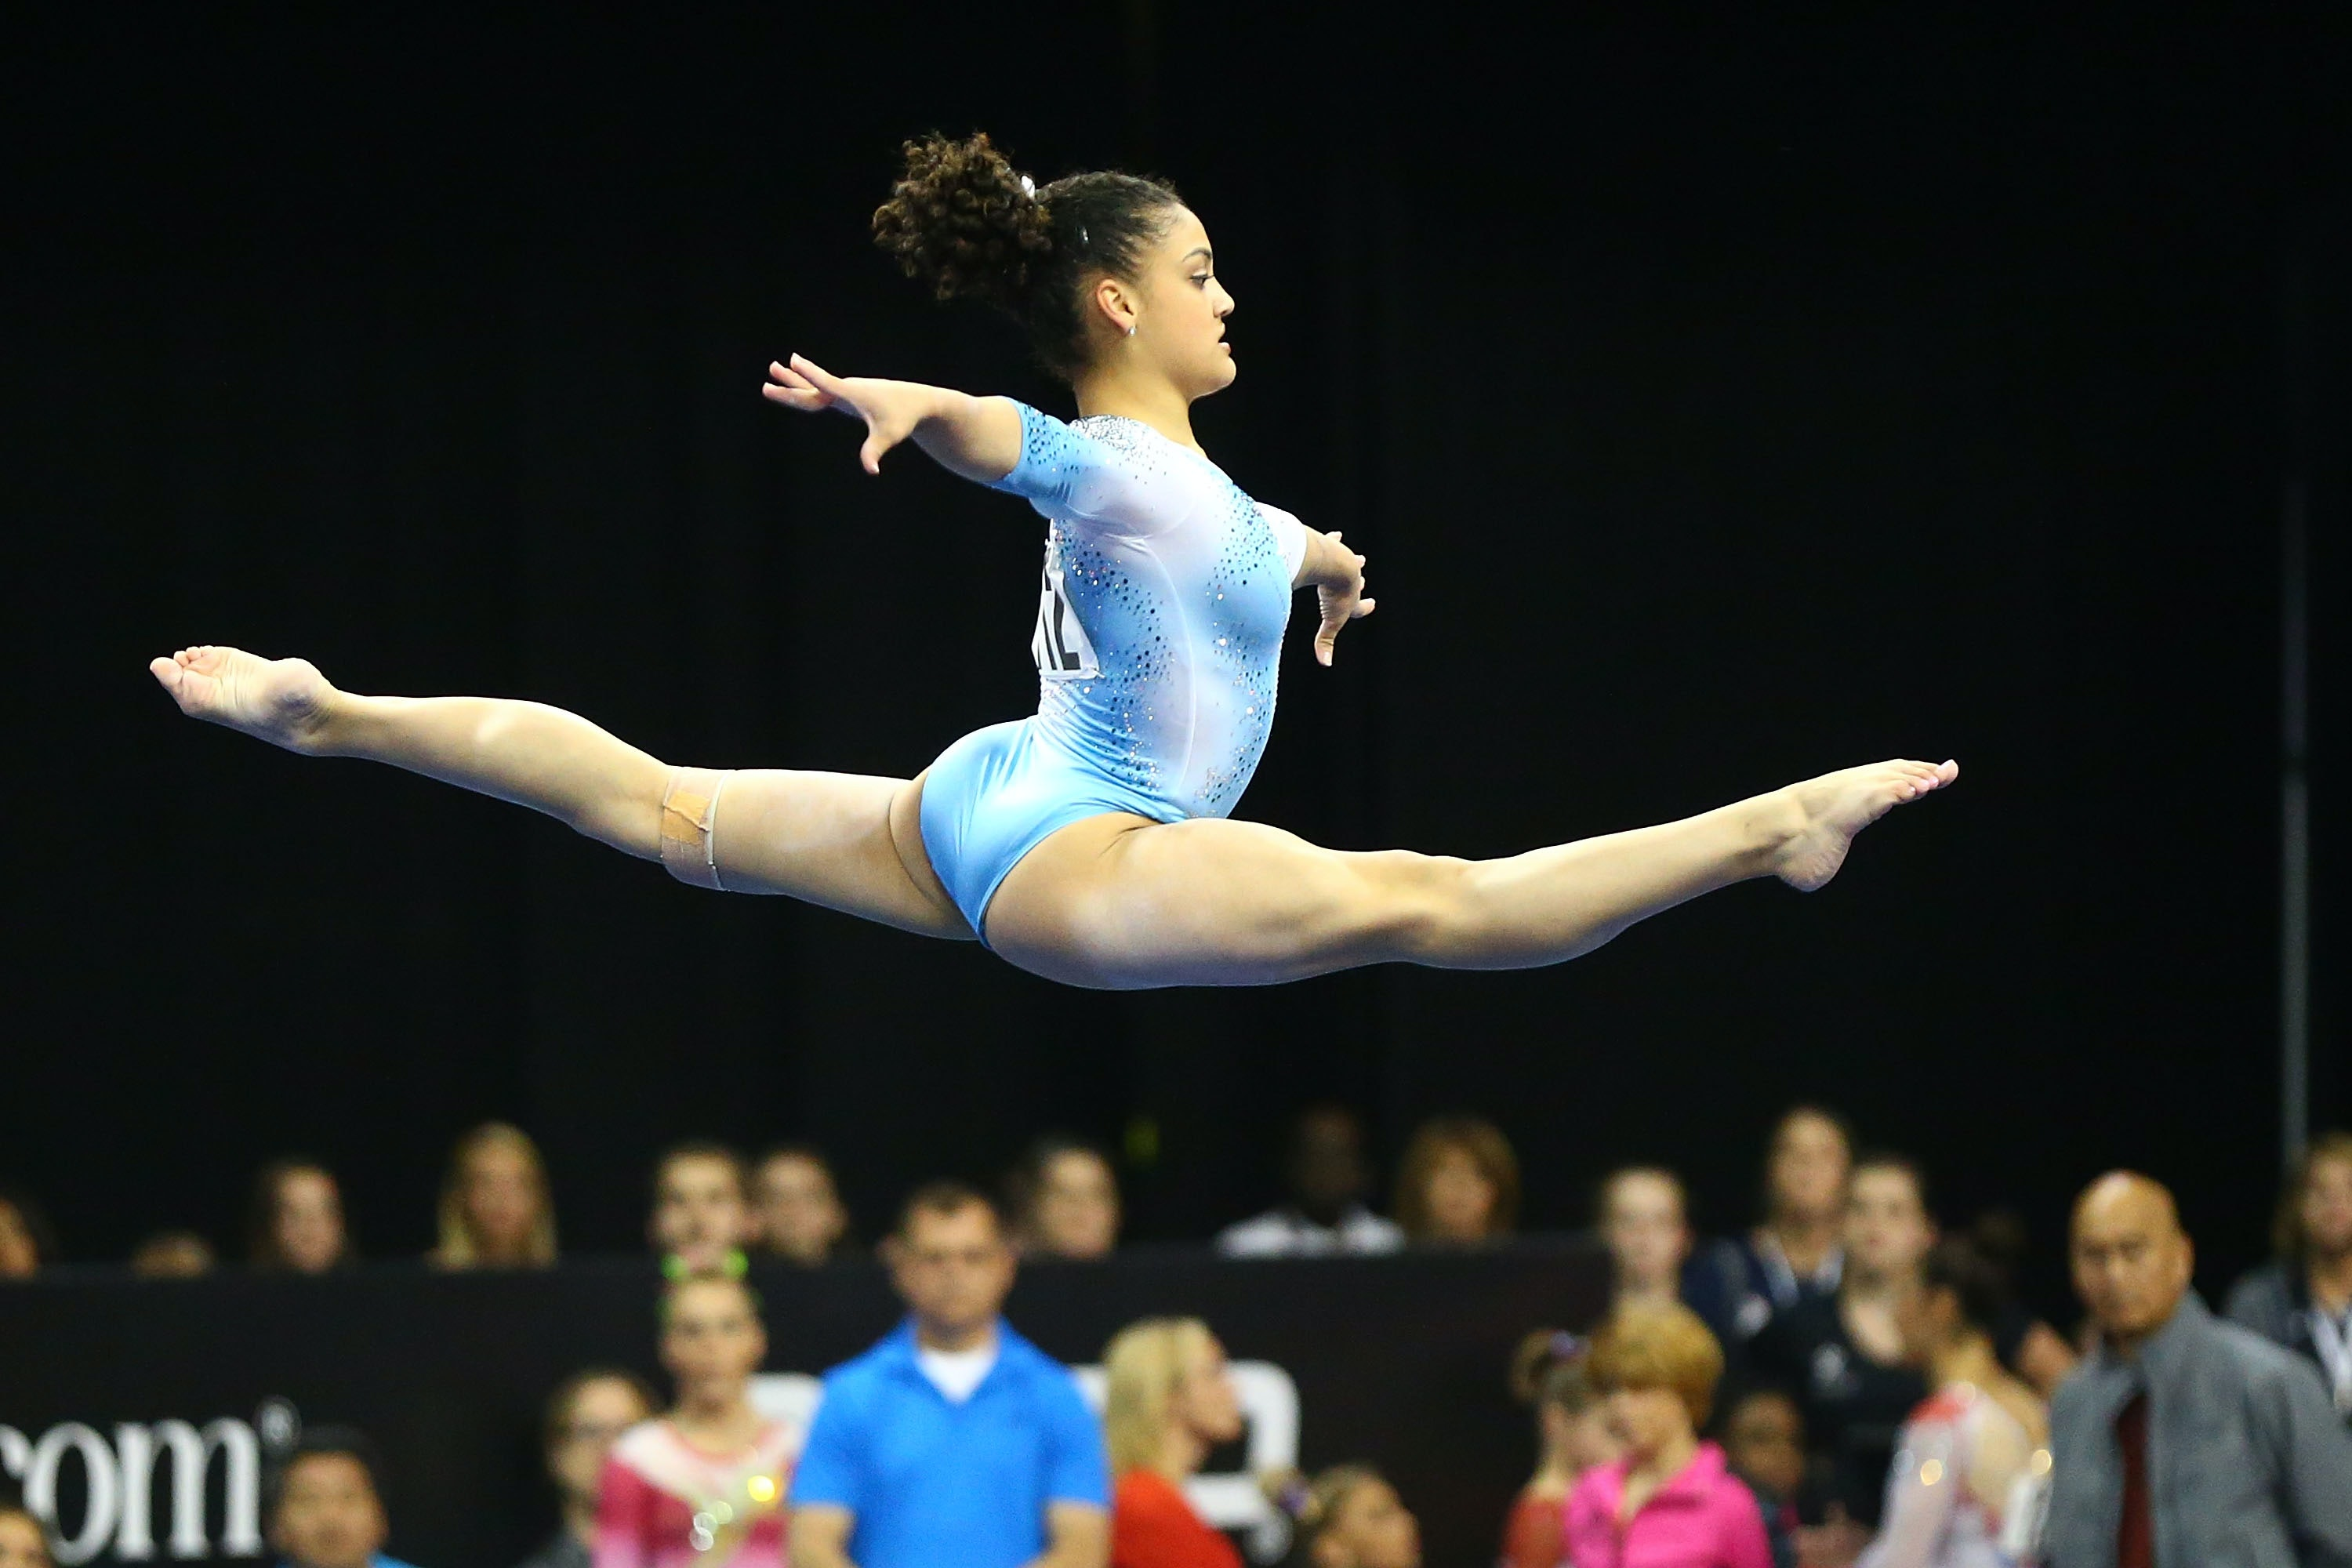 Gymnast Laurie Hernandez Goes Pro Ahead of Rio Olympics